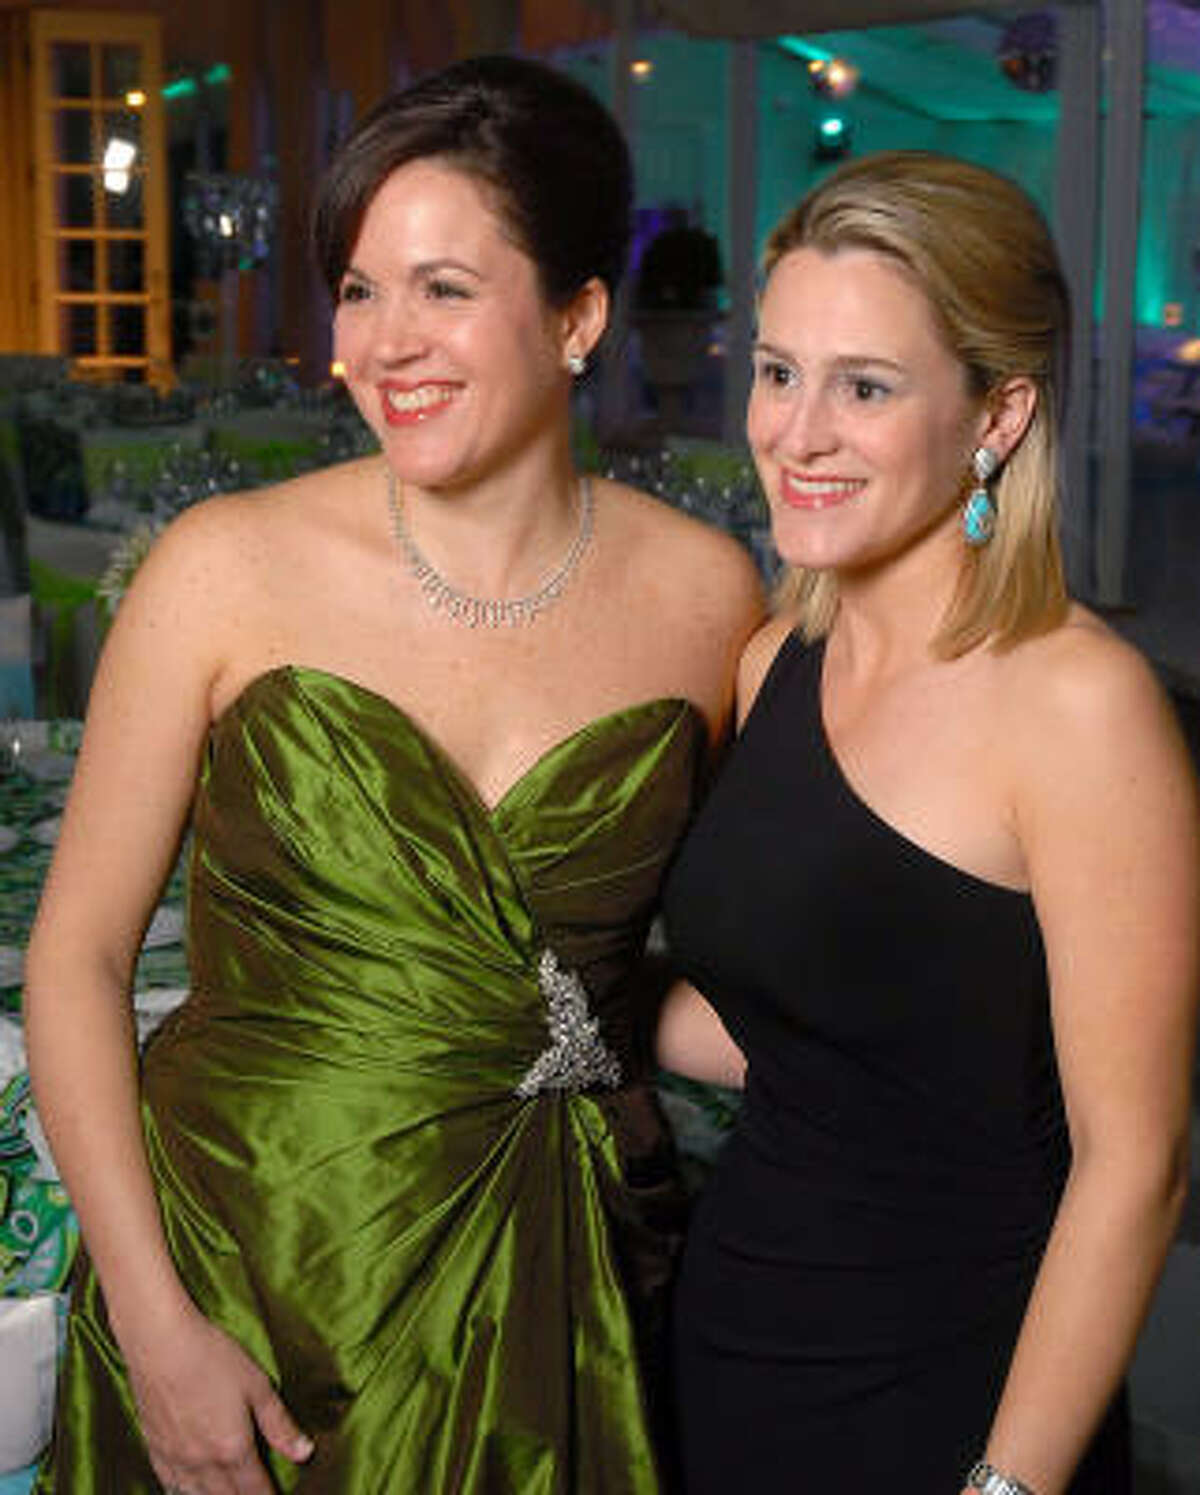 Mary Eliza Shaper, left, and Mary Louise Kinder at the Junior League Charity Ball at the Junior League of Houston.